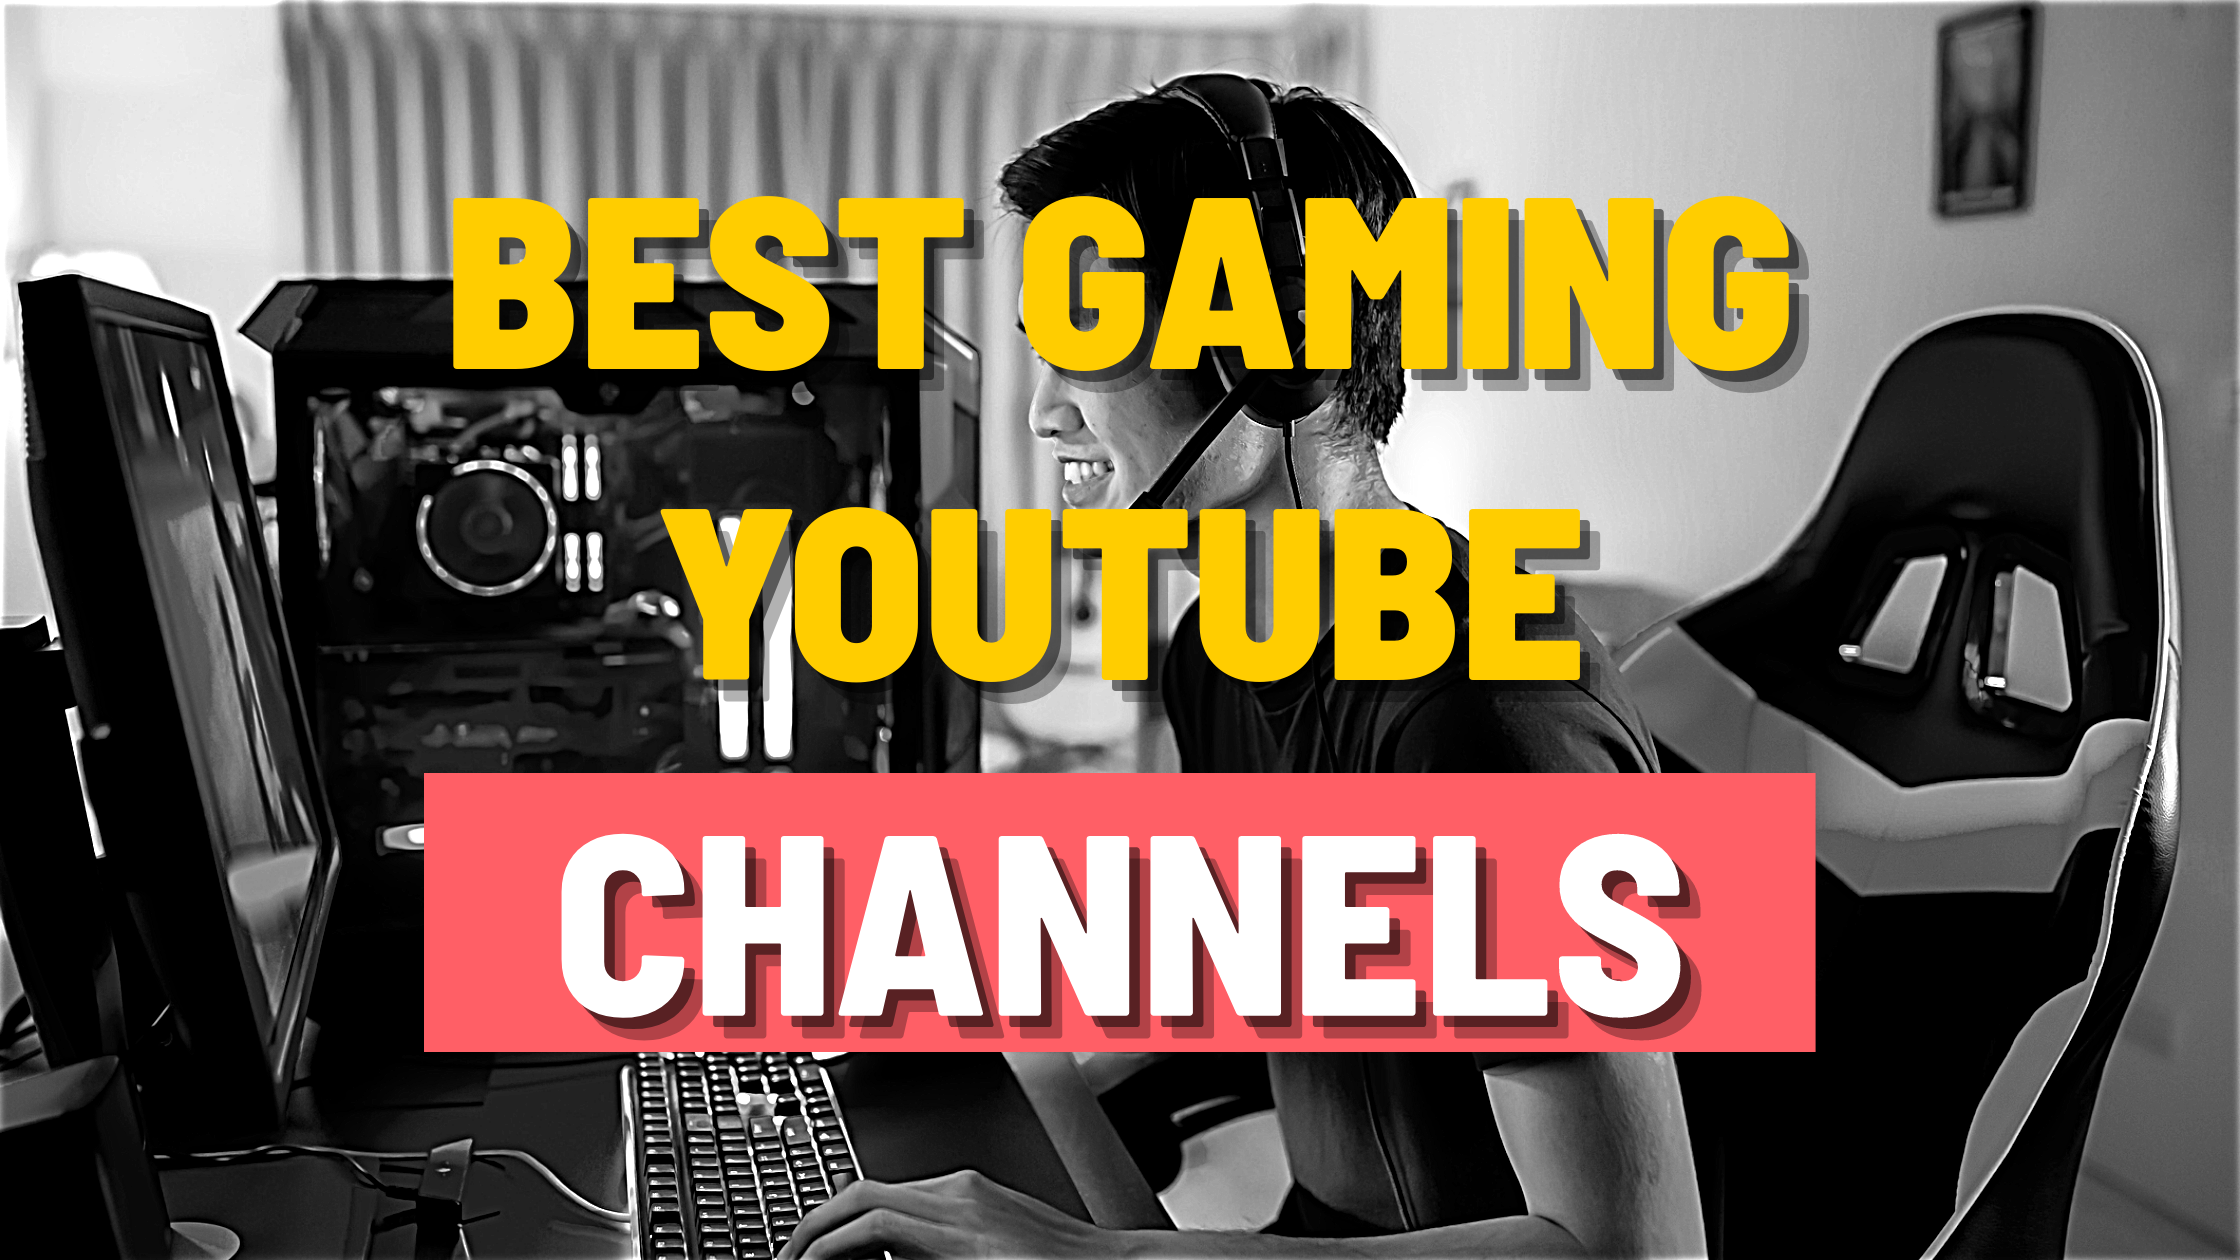 Best gaming YouTube channels